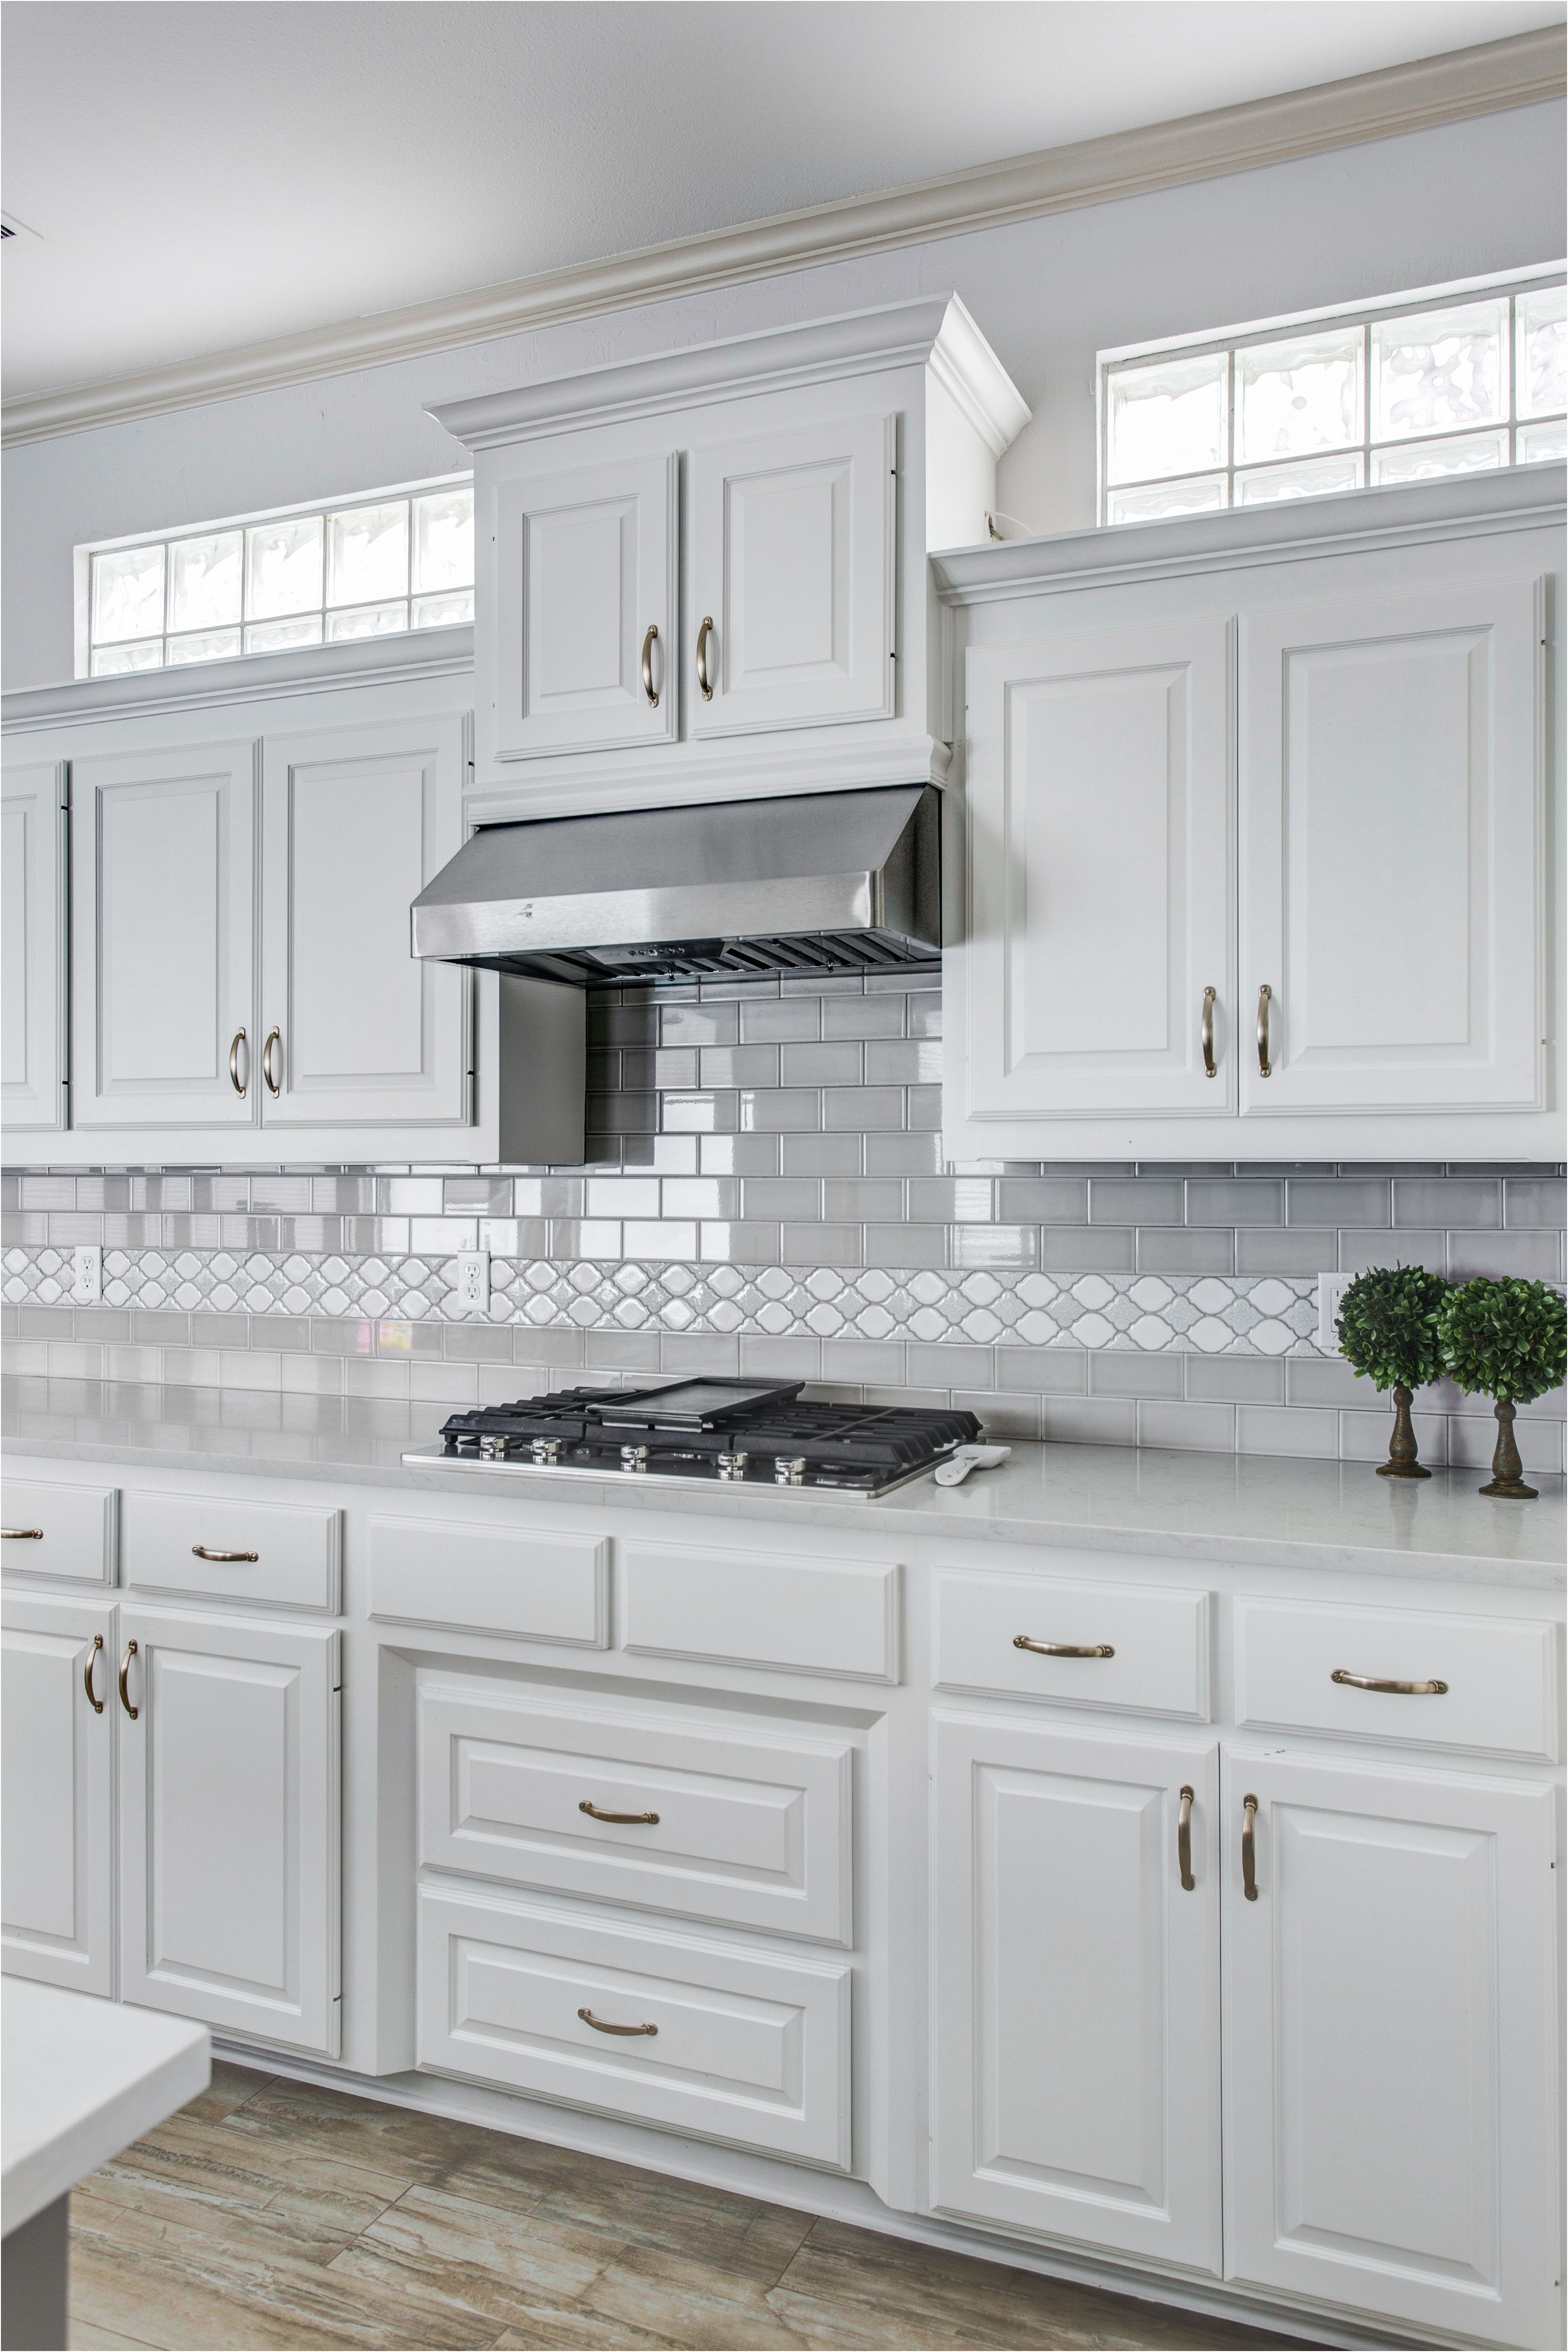 8 Calm Grey and White Kitchen Backsplash Gallery